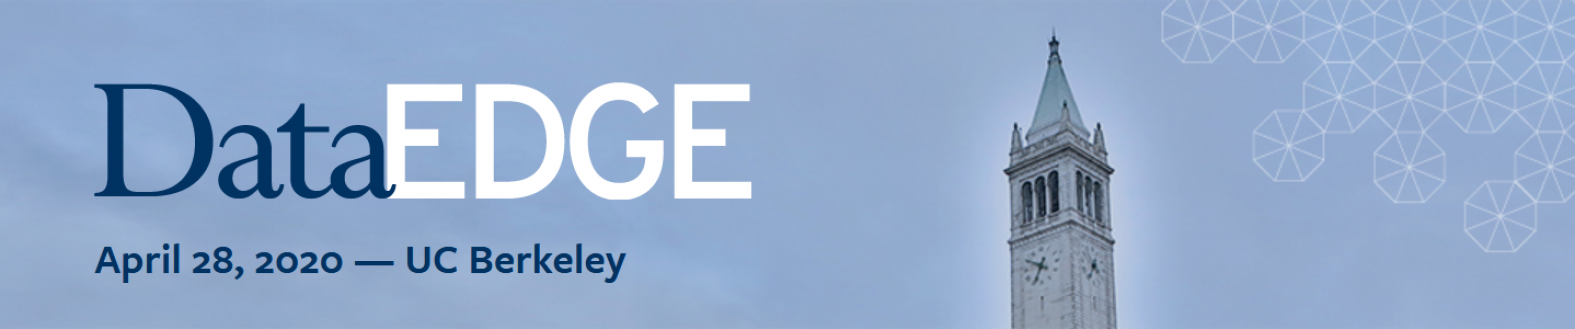 dataedge2020-banner.png